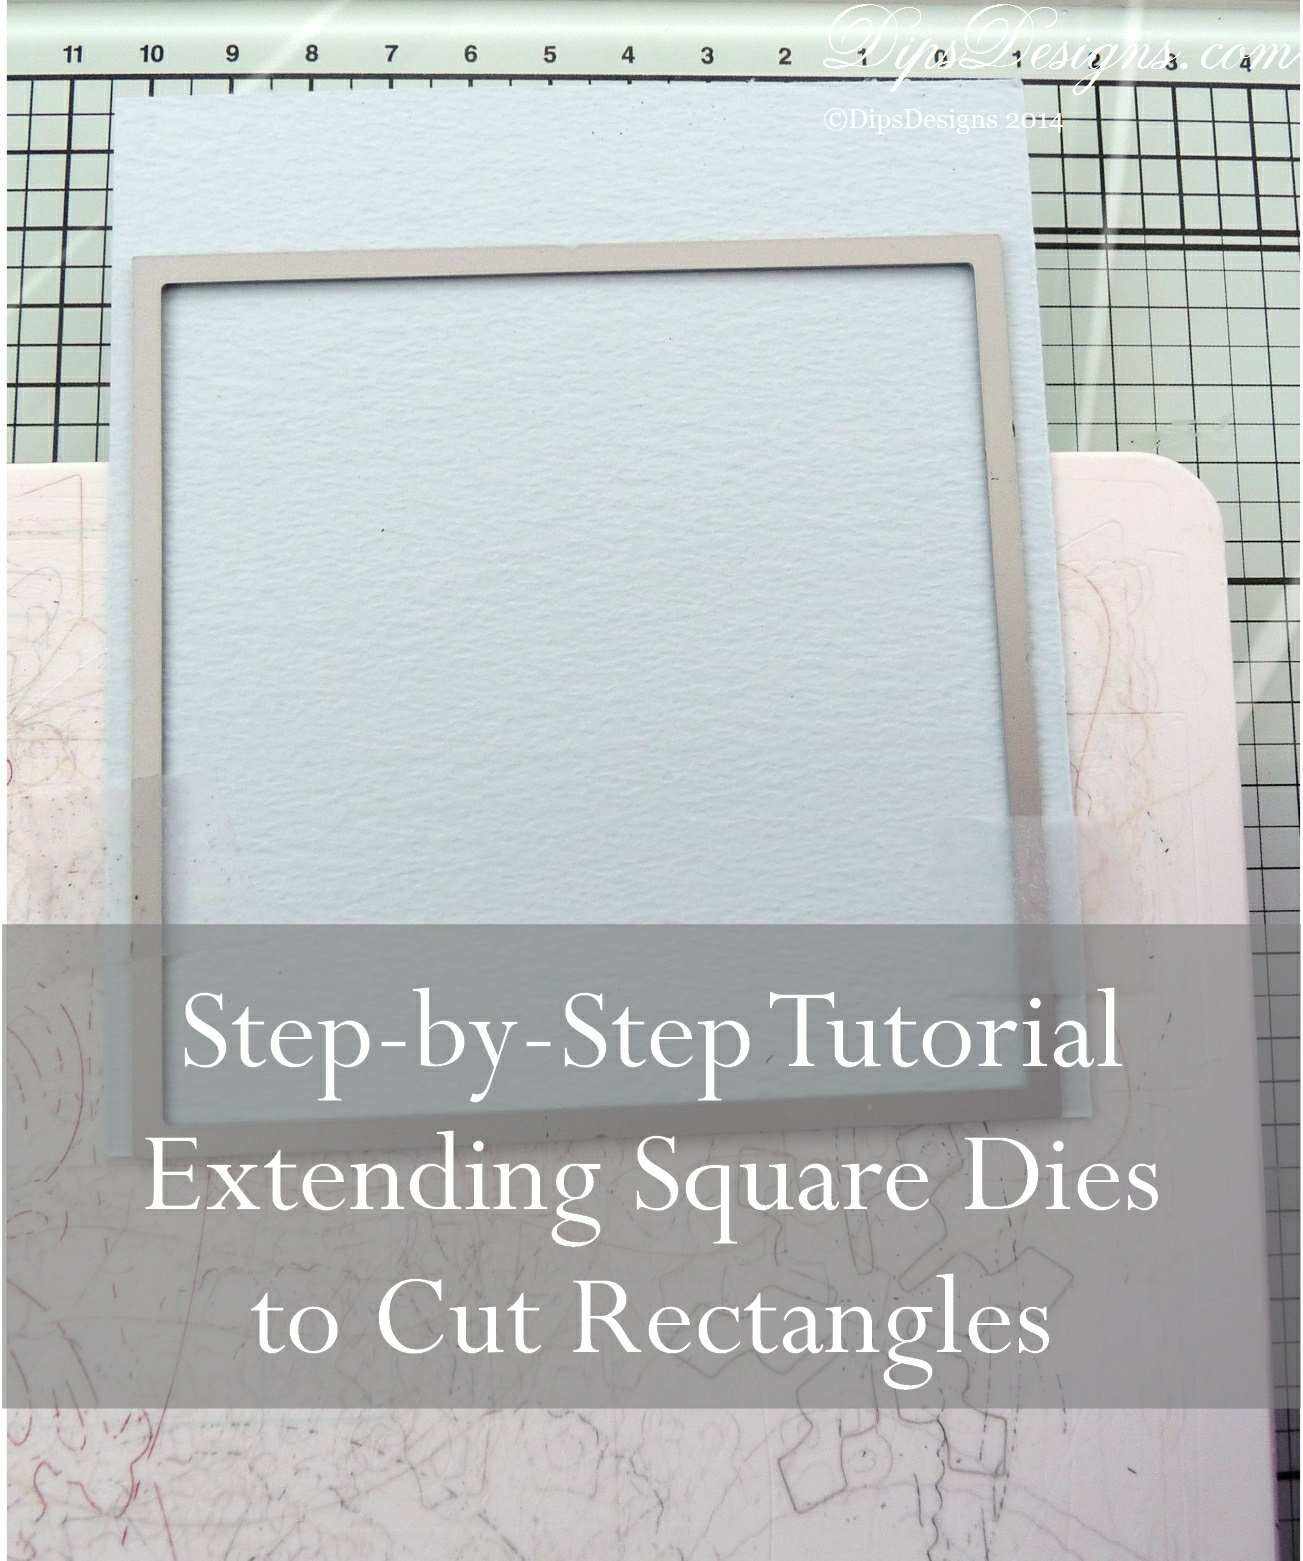 Extending Square Dies to Cut Rectangles Step-by-Step Tutorial